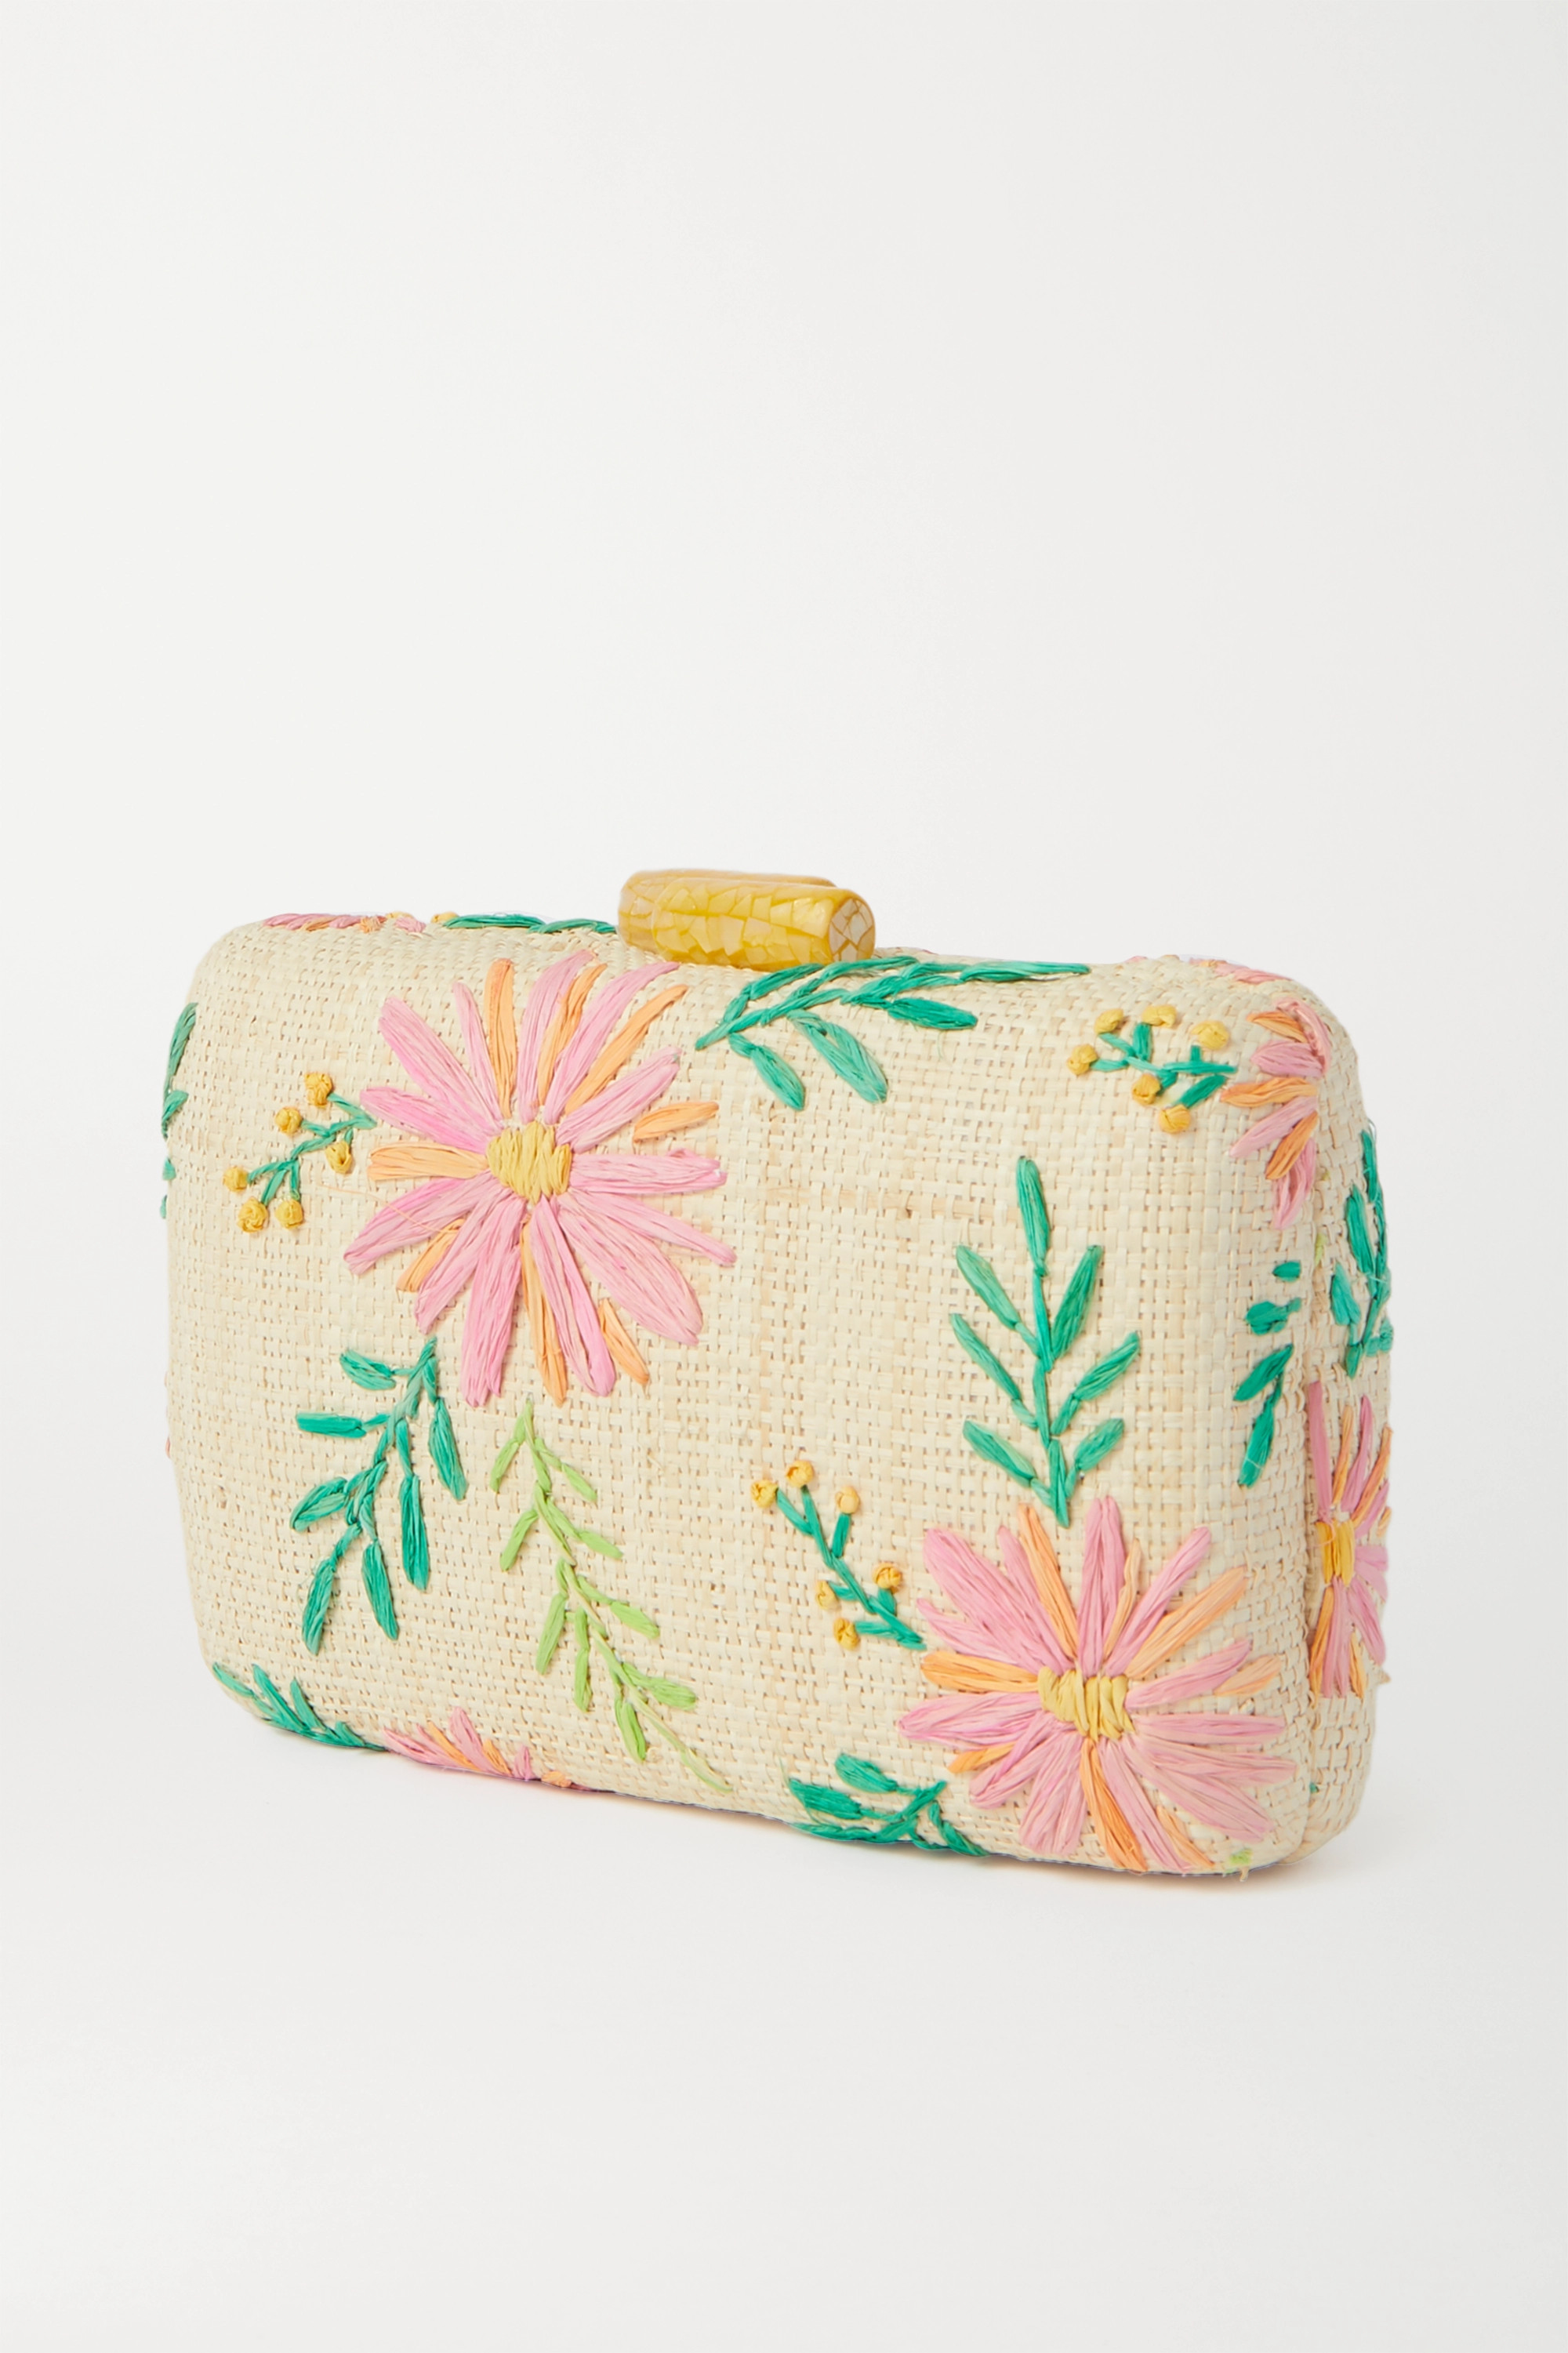 Kayu Claire embroidered straw clutch